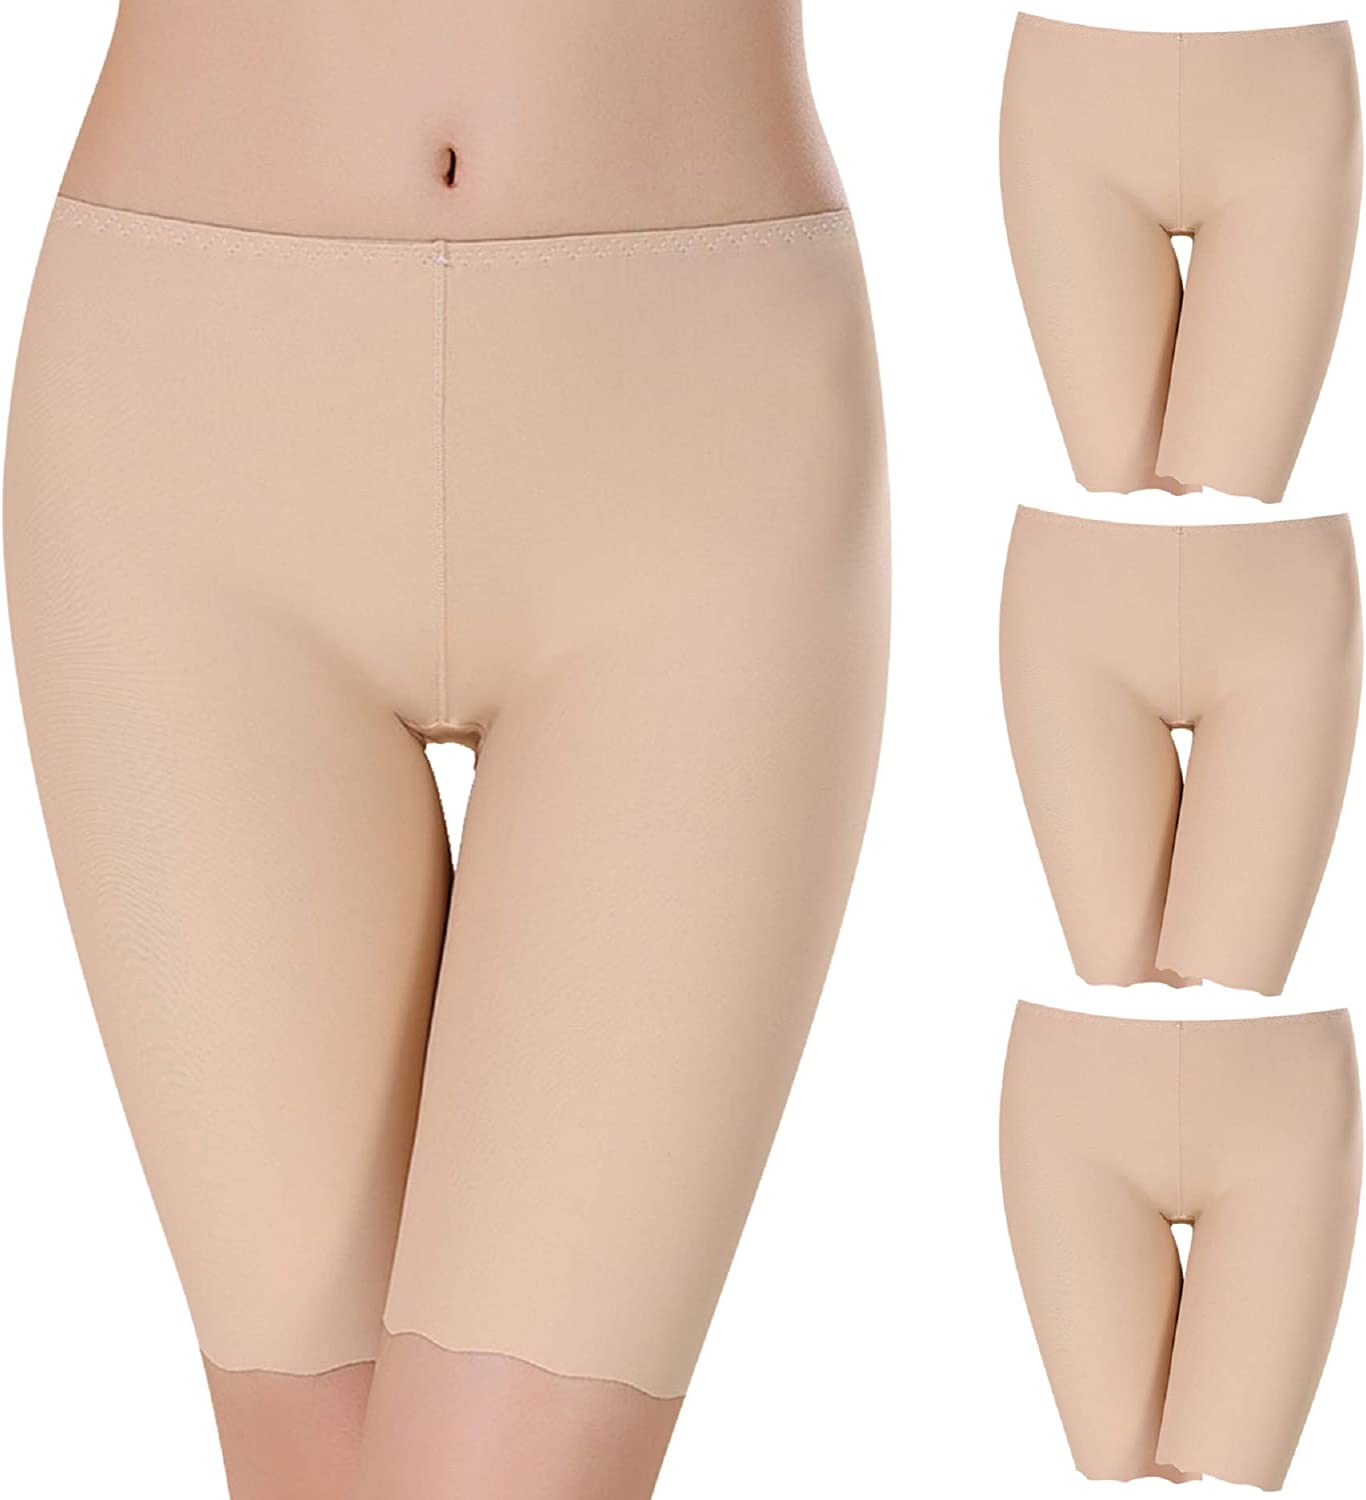 UMIPUBO 3 Pack Shorts Womens Underwear Ice Silk Seamless Slipshort Safety Pants Invisible Mid-Length Leggings Stretchy Under Dresses Boxer Briefs